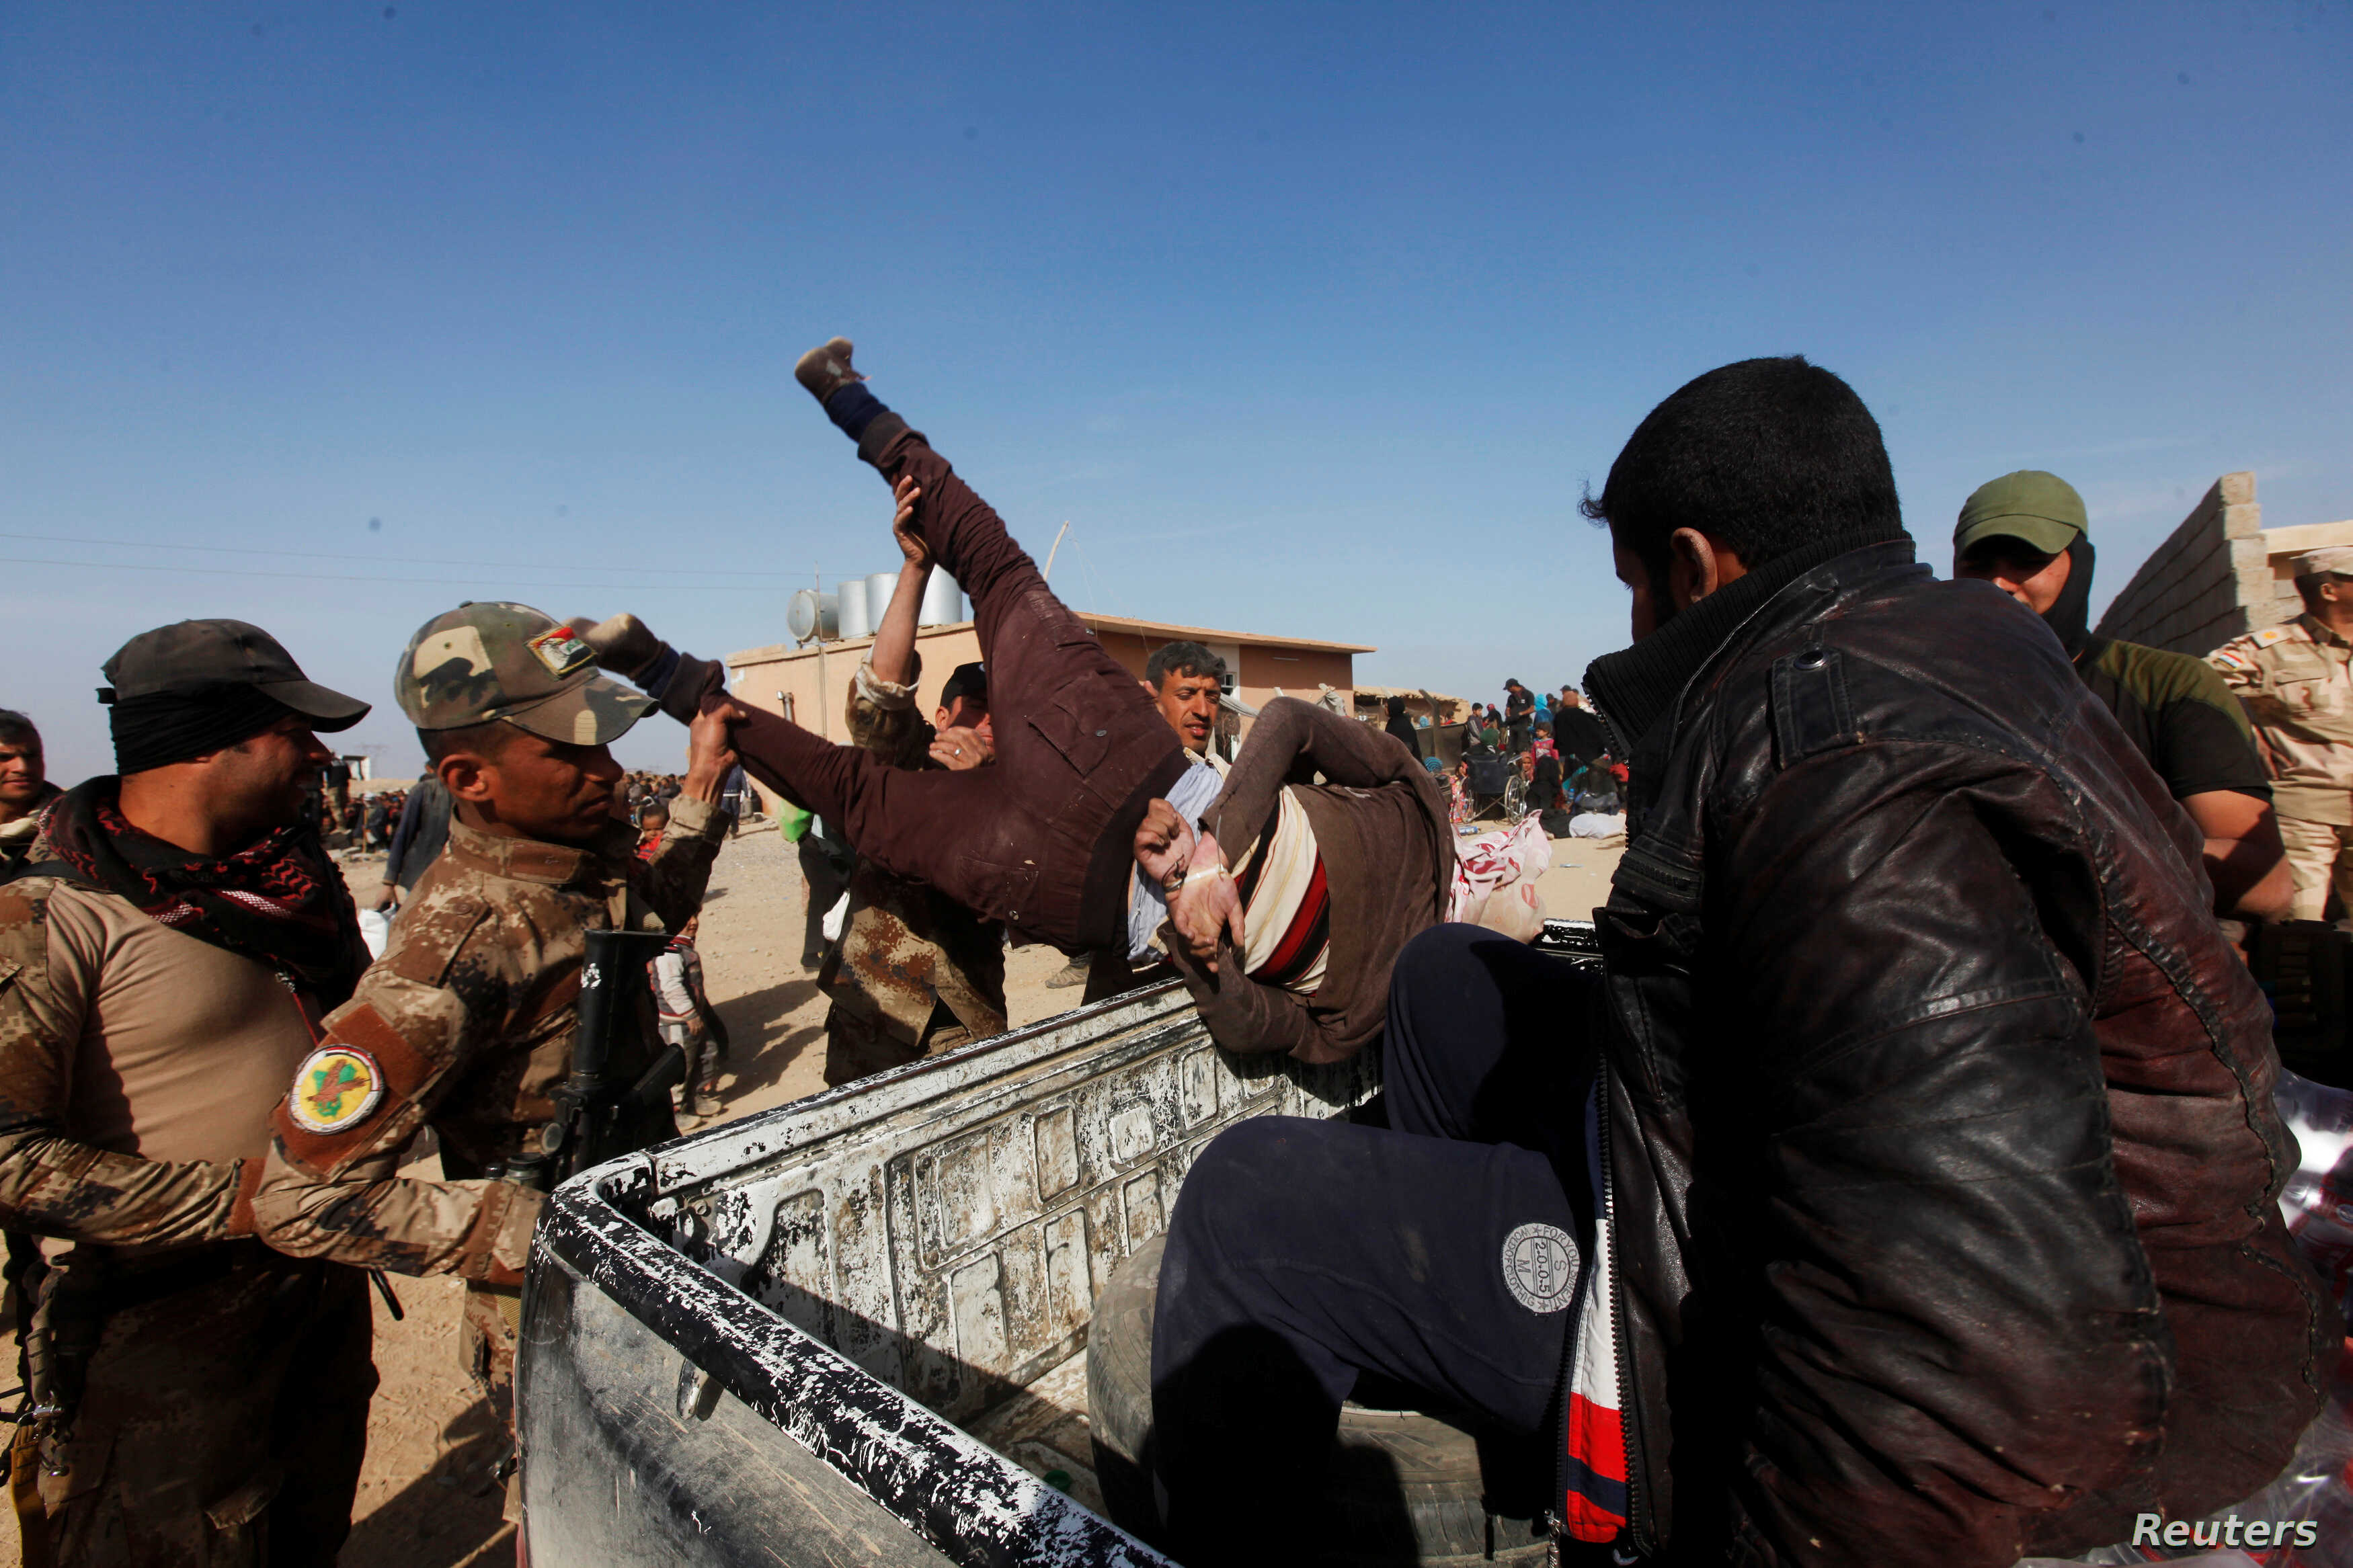 Iraqi Special Operations Forces arrest a person suspected of belonging to Islamic State militants in western Mosul, Iraq February 26, 2017.